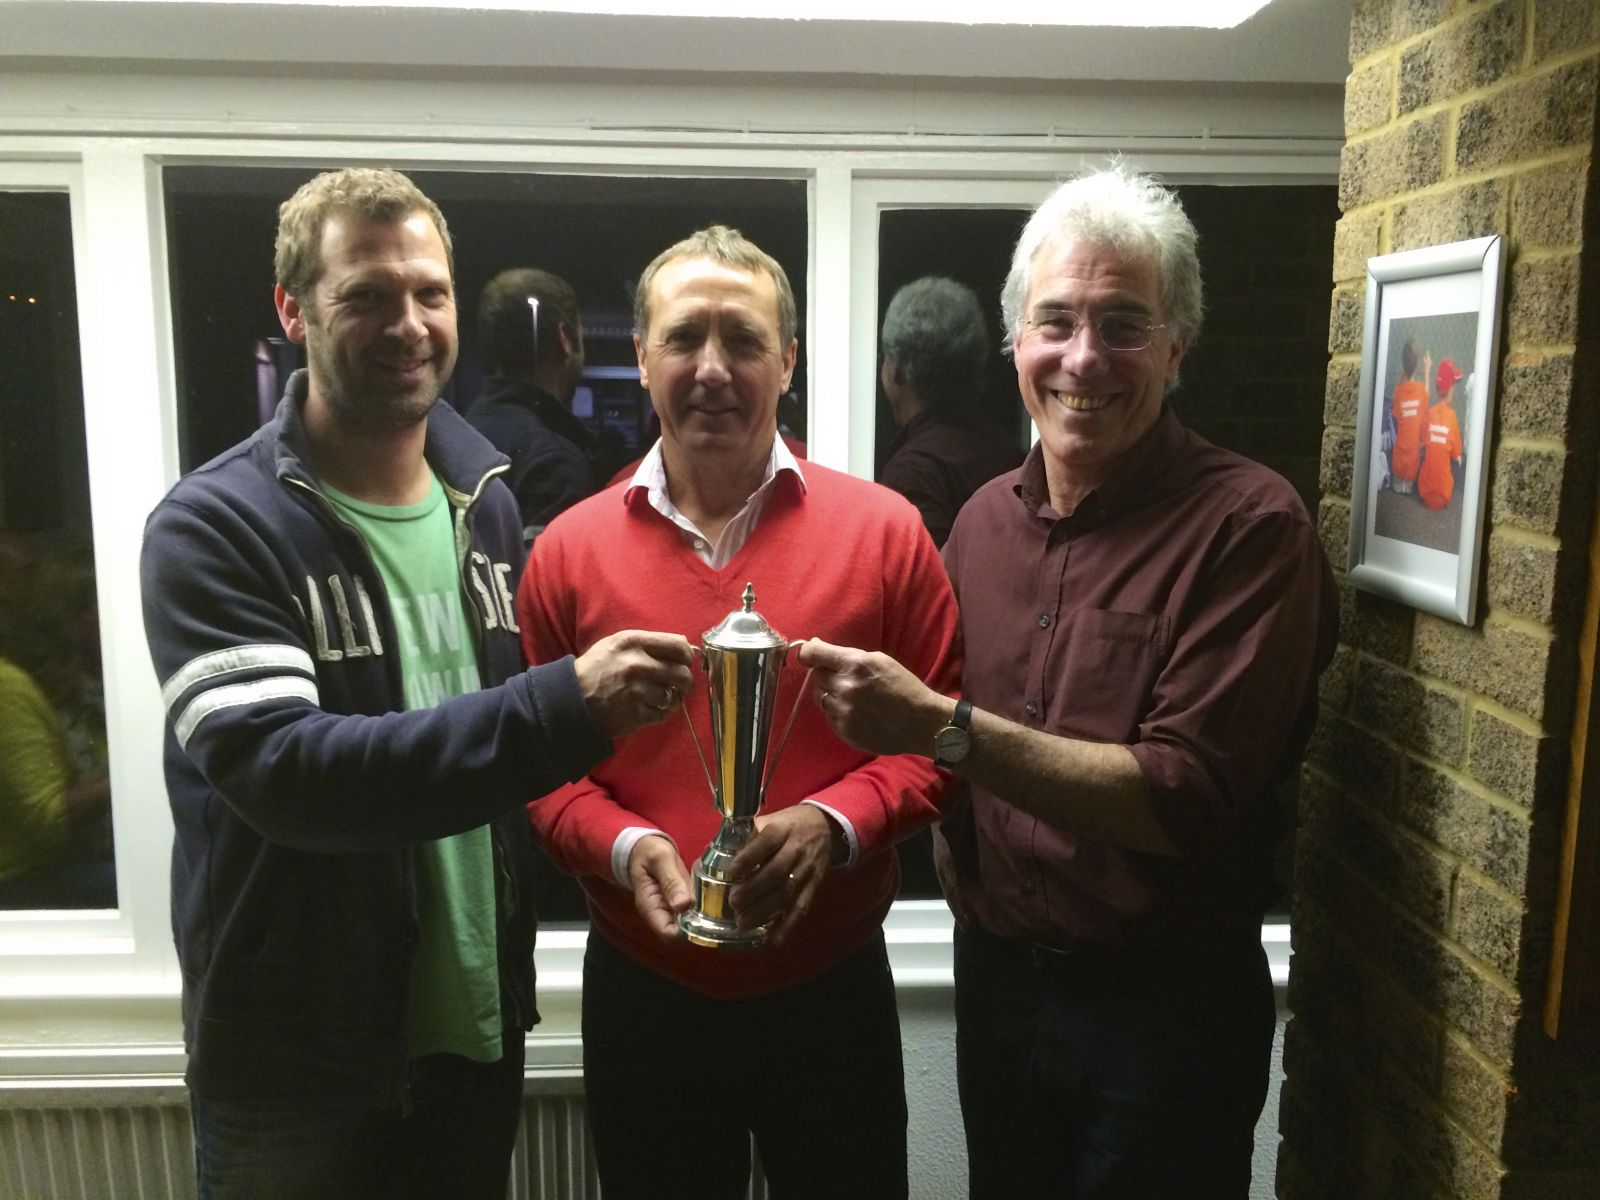 Joint winners Colin Tracy and Lee Loder were presented with the club person of the year award 2014